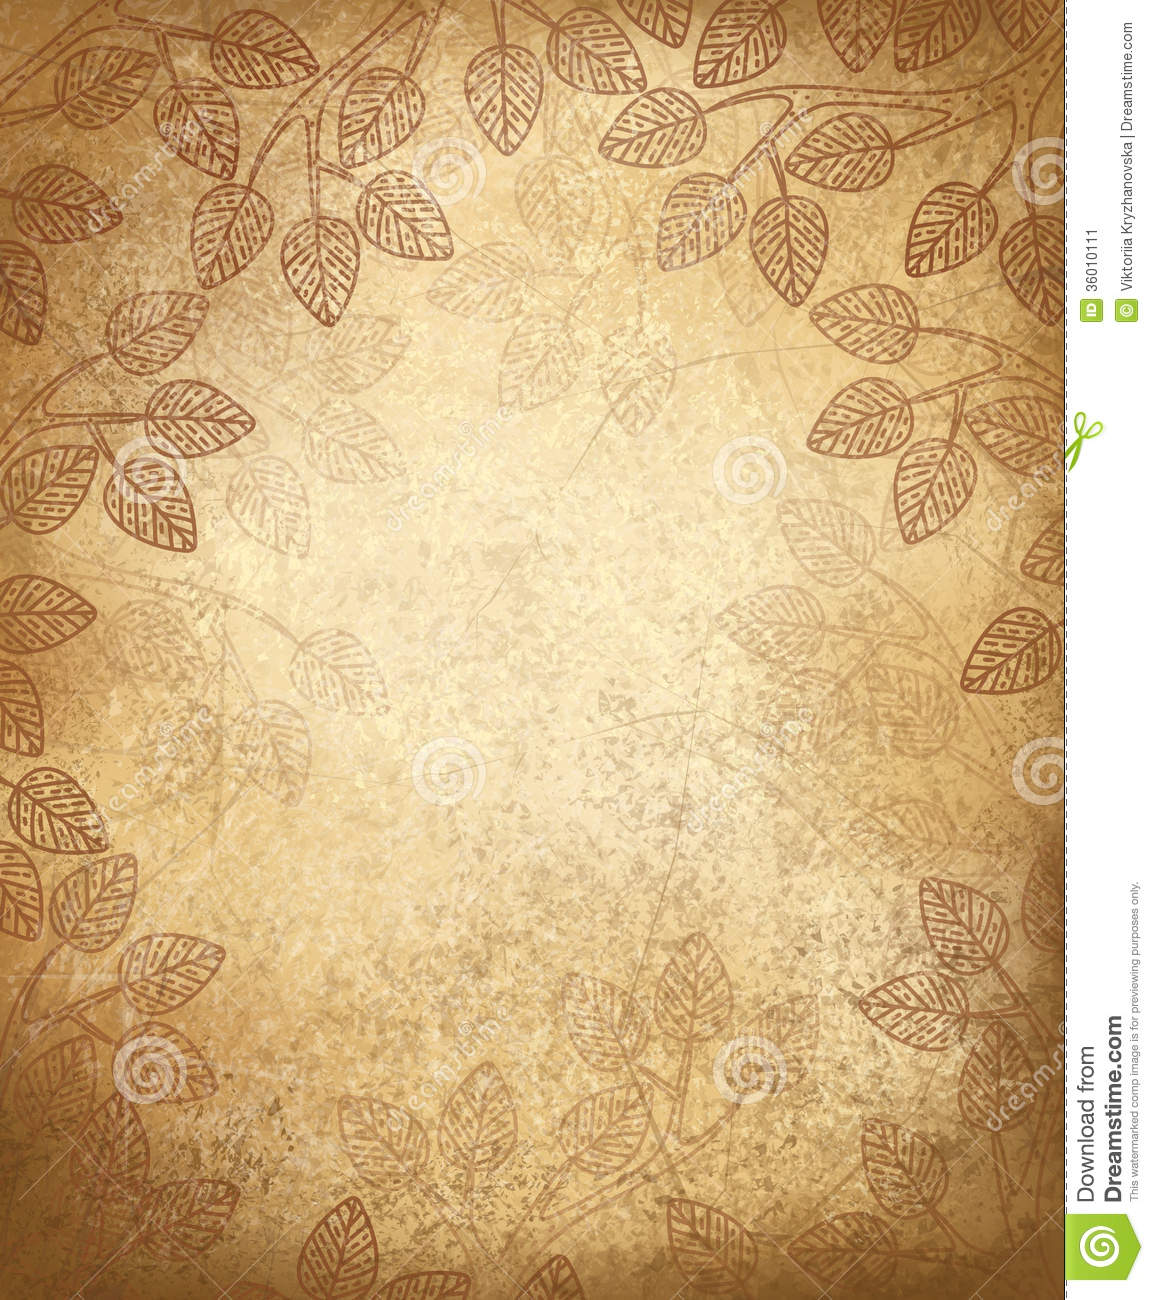 Fall In Love Leaf Wallpaper 16 Vector Old Paper Images Old Paper Texture Old Paper